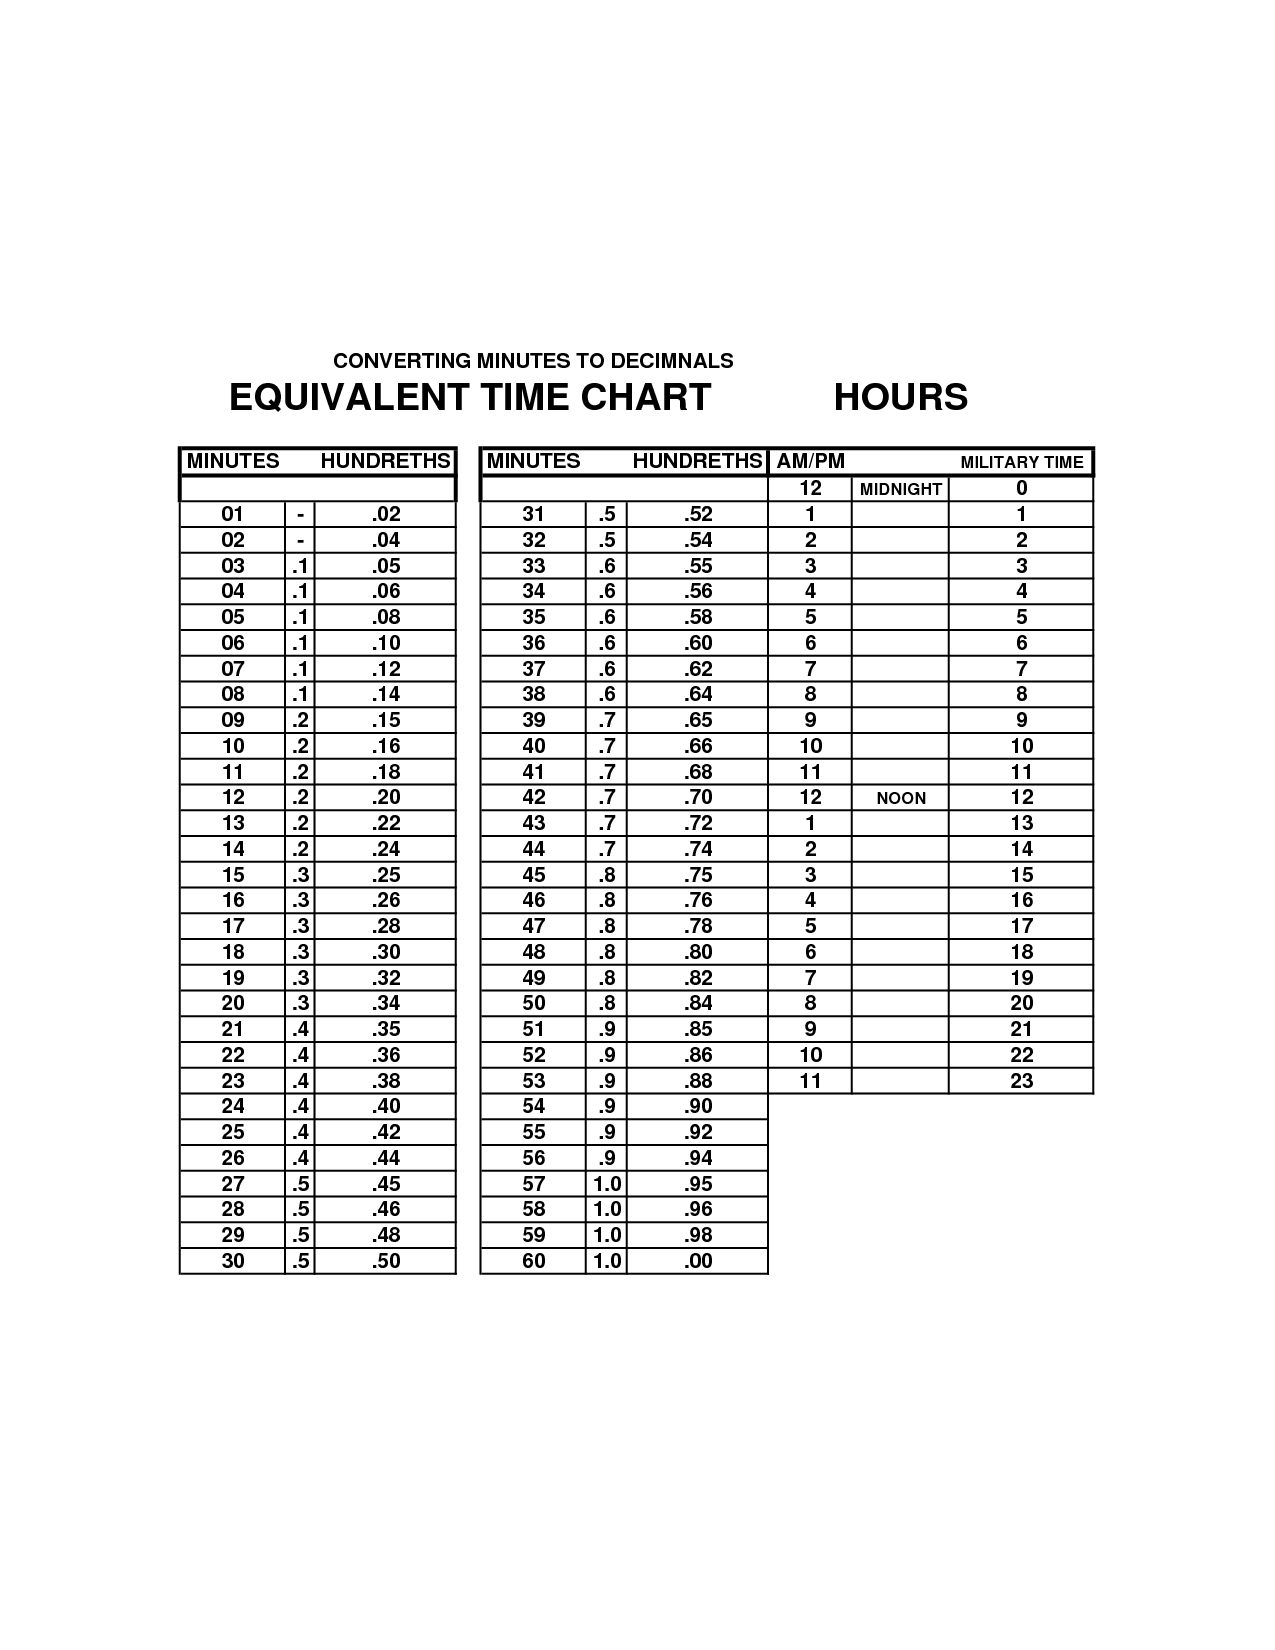 printable-converting-military-time-into-decimals.png